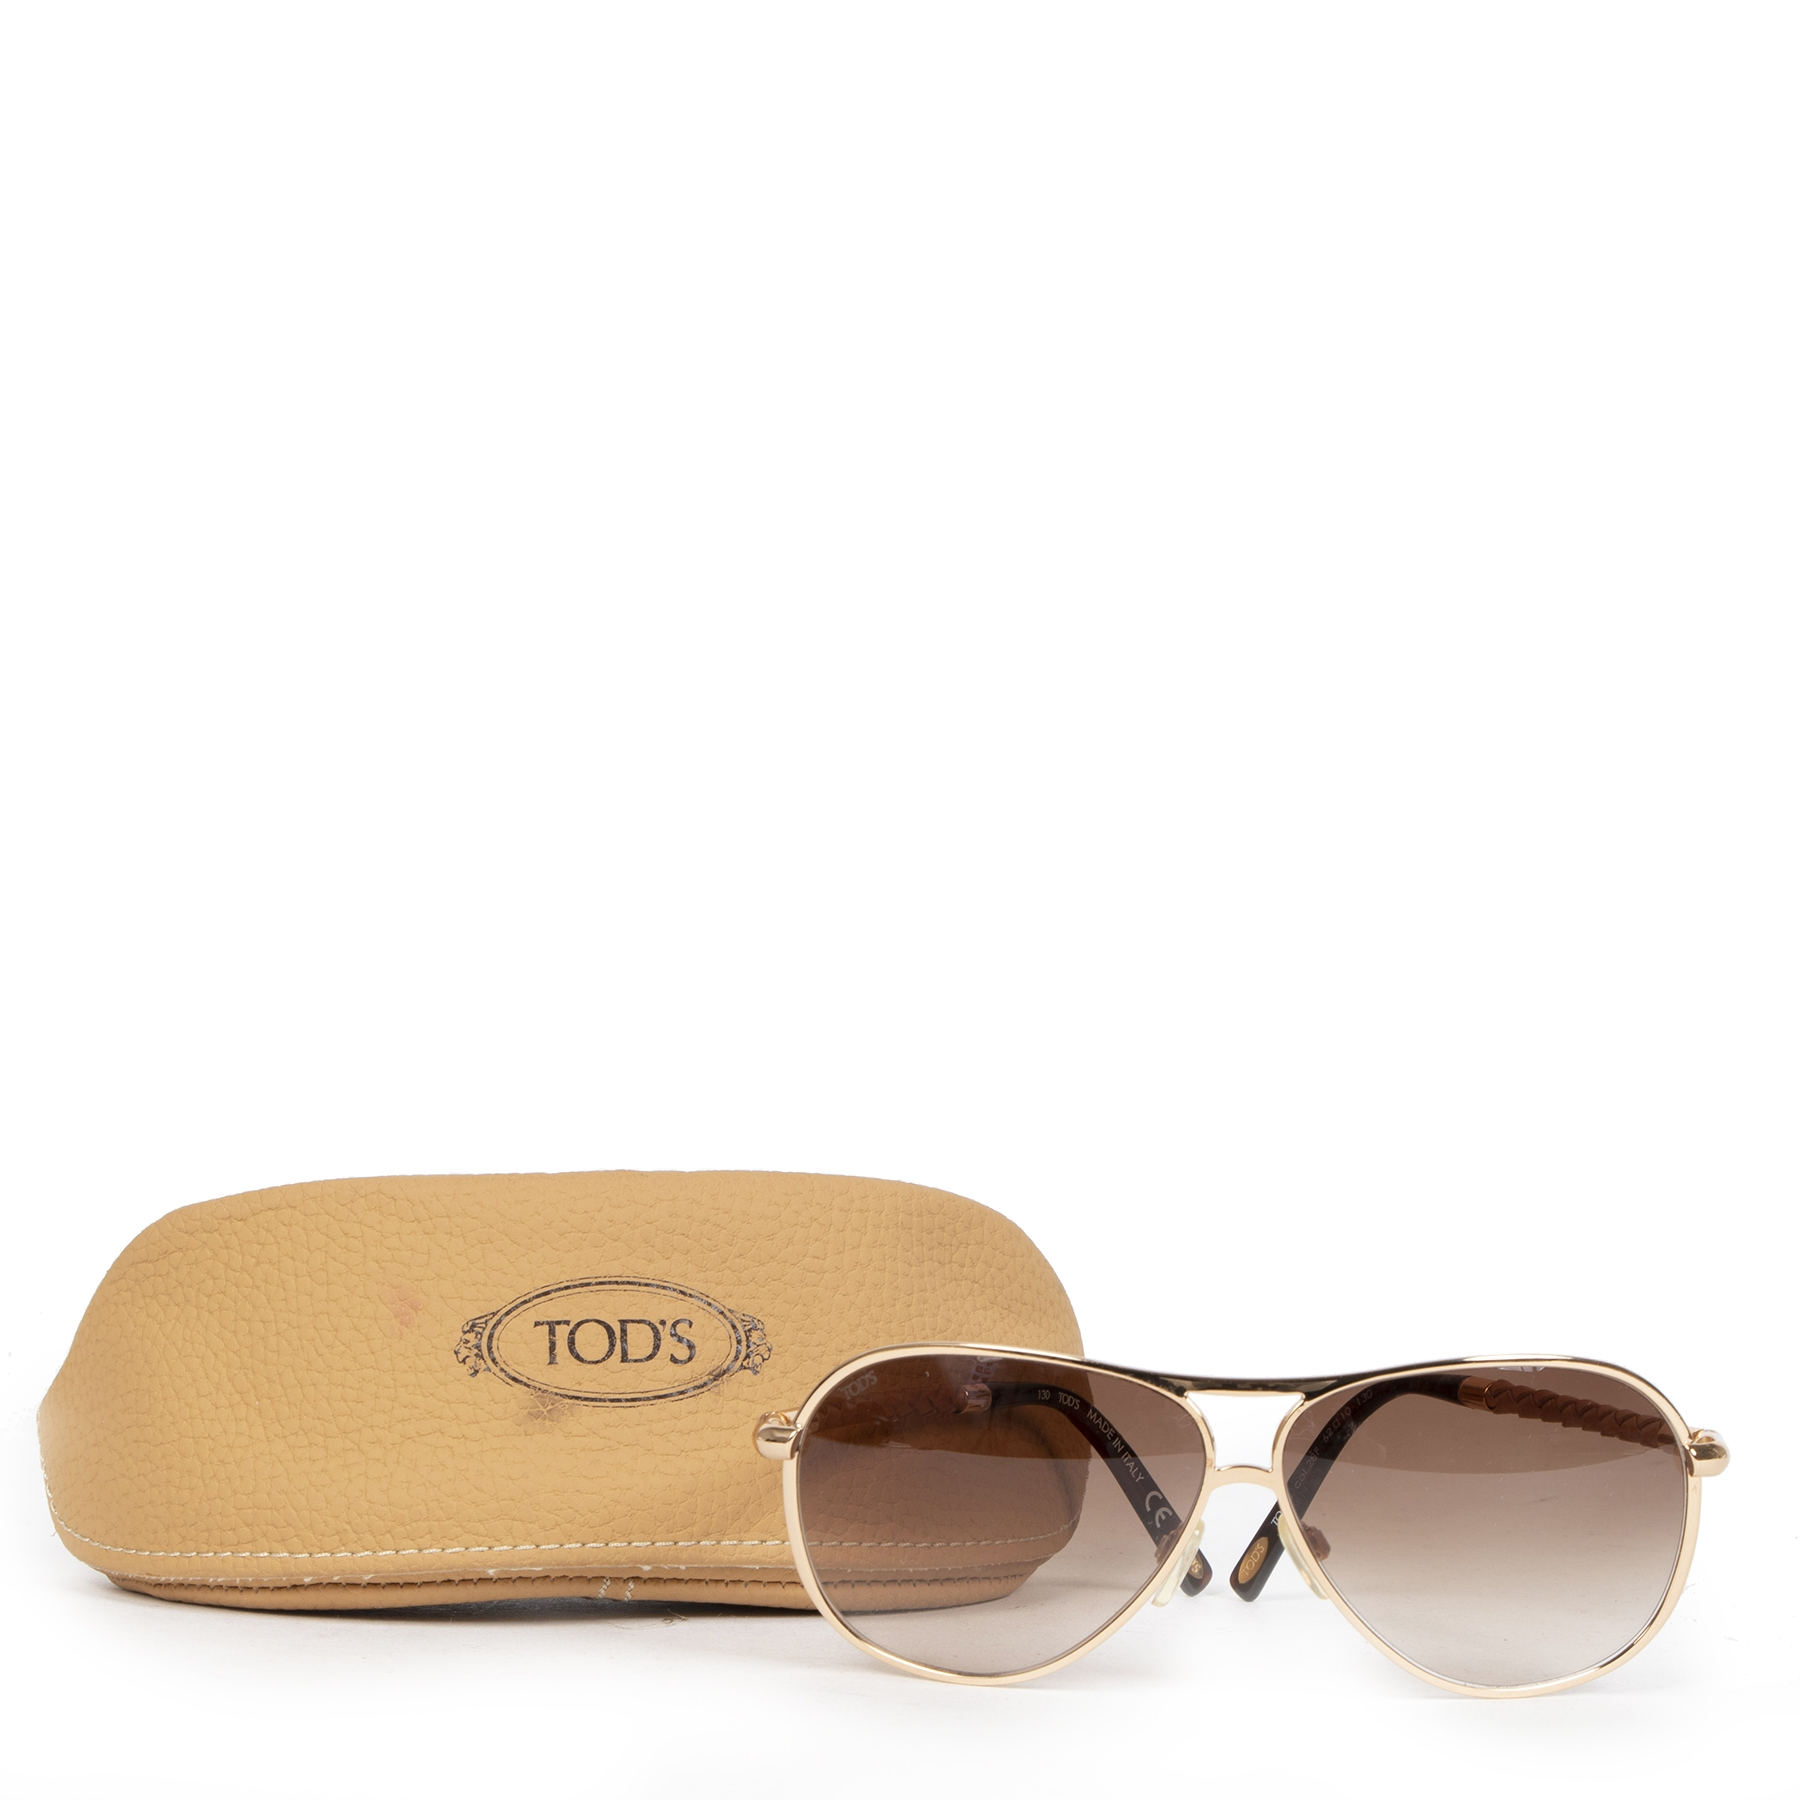 Authentic secondhand TOD'S Leather Woven Temple Aviator Sunglasses designer accessories designer brands luxury vintage webshop fashion safe secure online shopping worldwide shipping